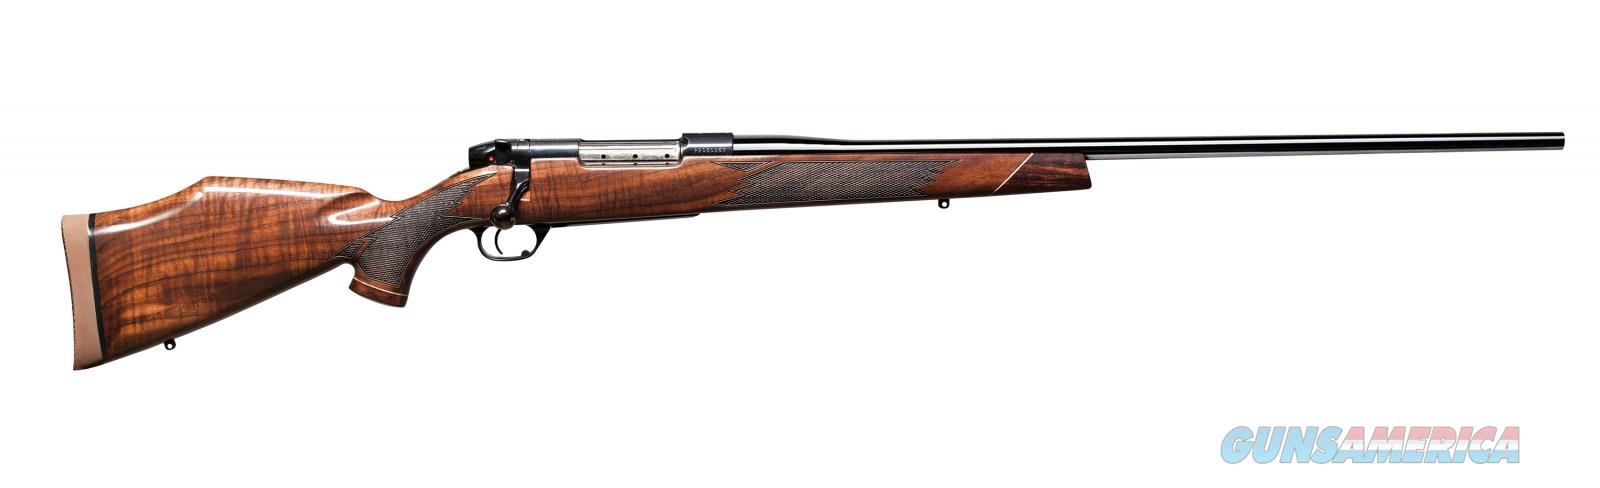 Weatherby MK V Deluxe 270 WBY Magnum  Free Shipping  Guns > Rifles > Weatherby Rifles > Sporting